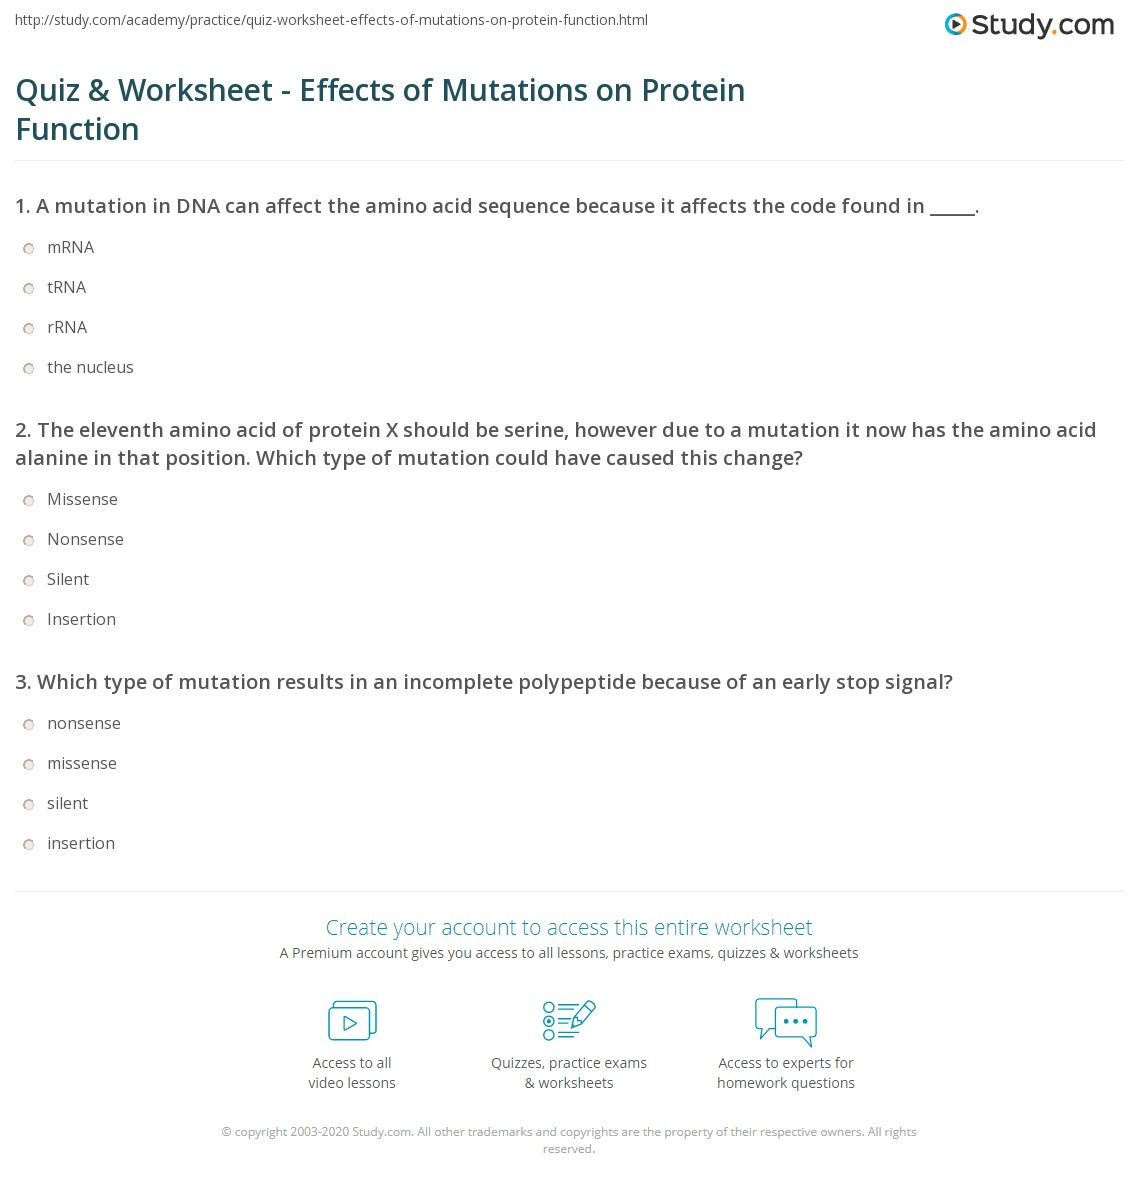 Worksheets Mutations Worksheet quiz worksheet effects of mutations on protein function study com the eleventh amino acid x should be serine however due to a mutation it now has alanine in that posi